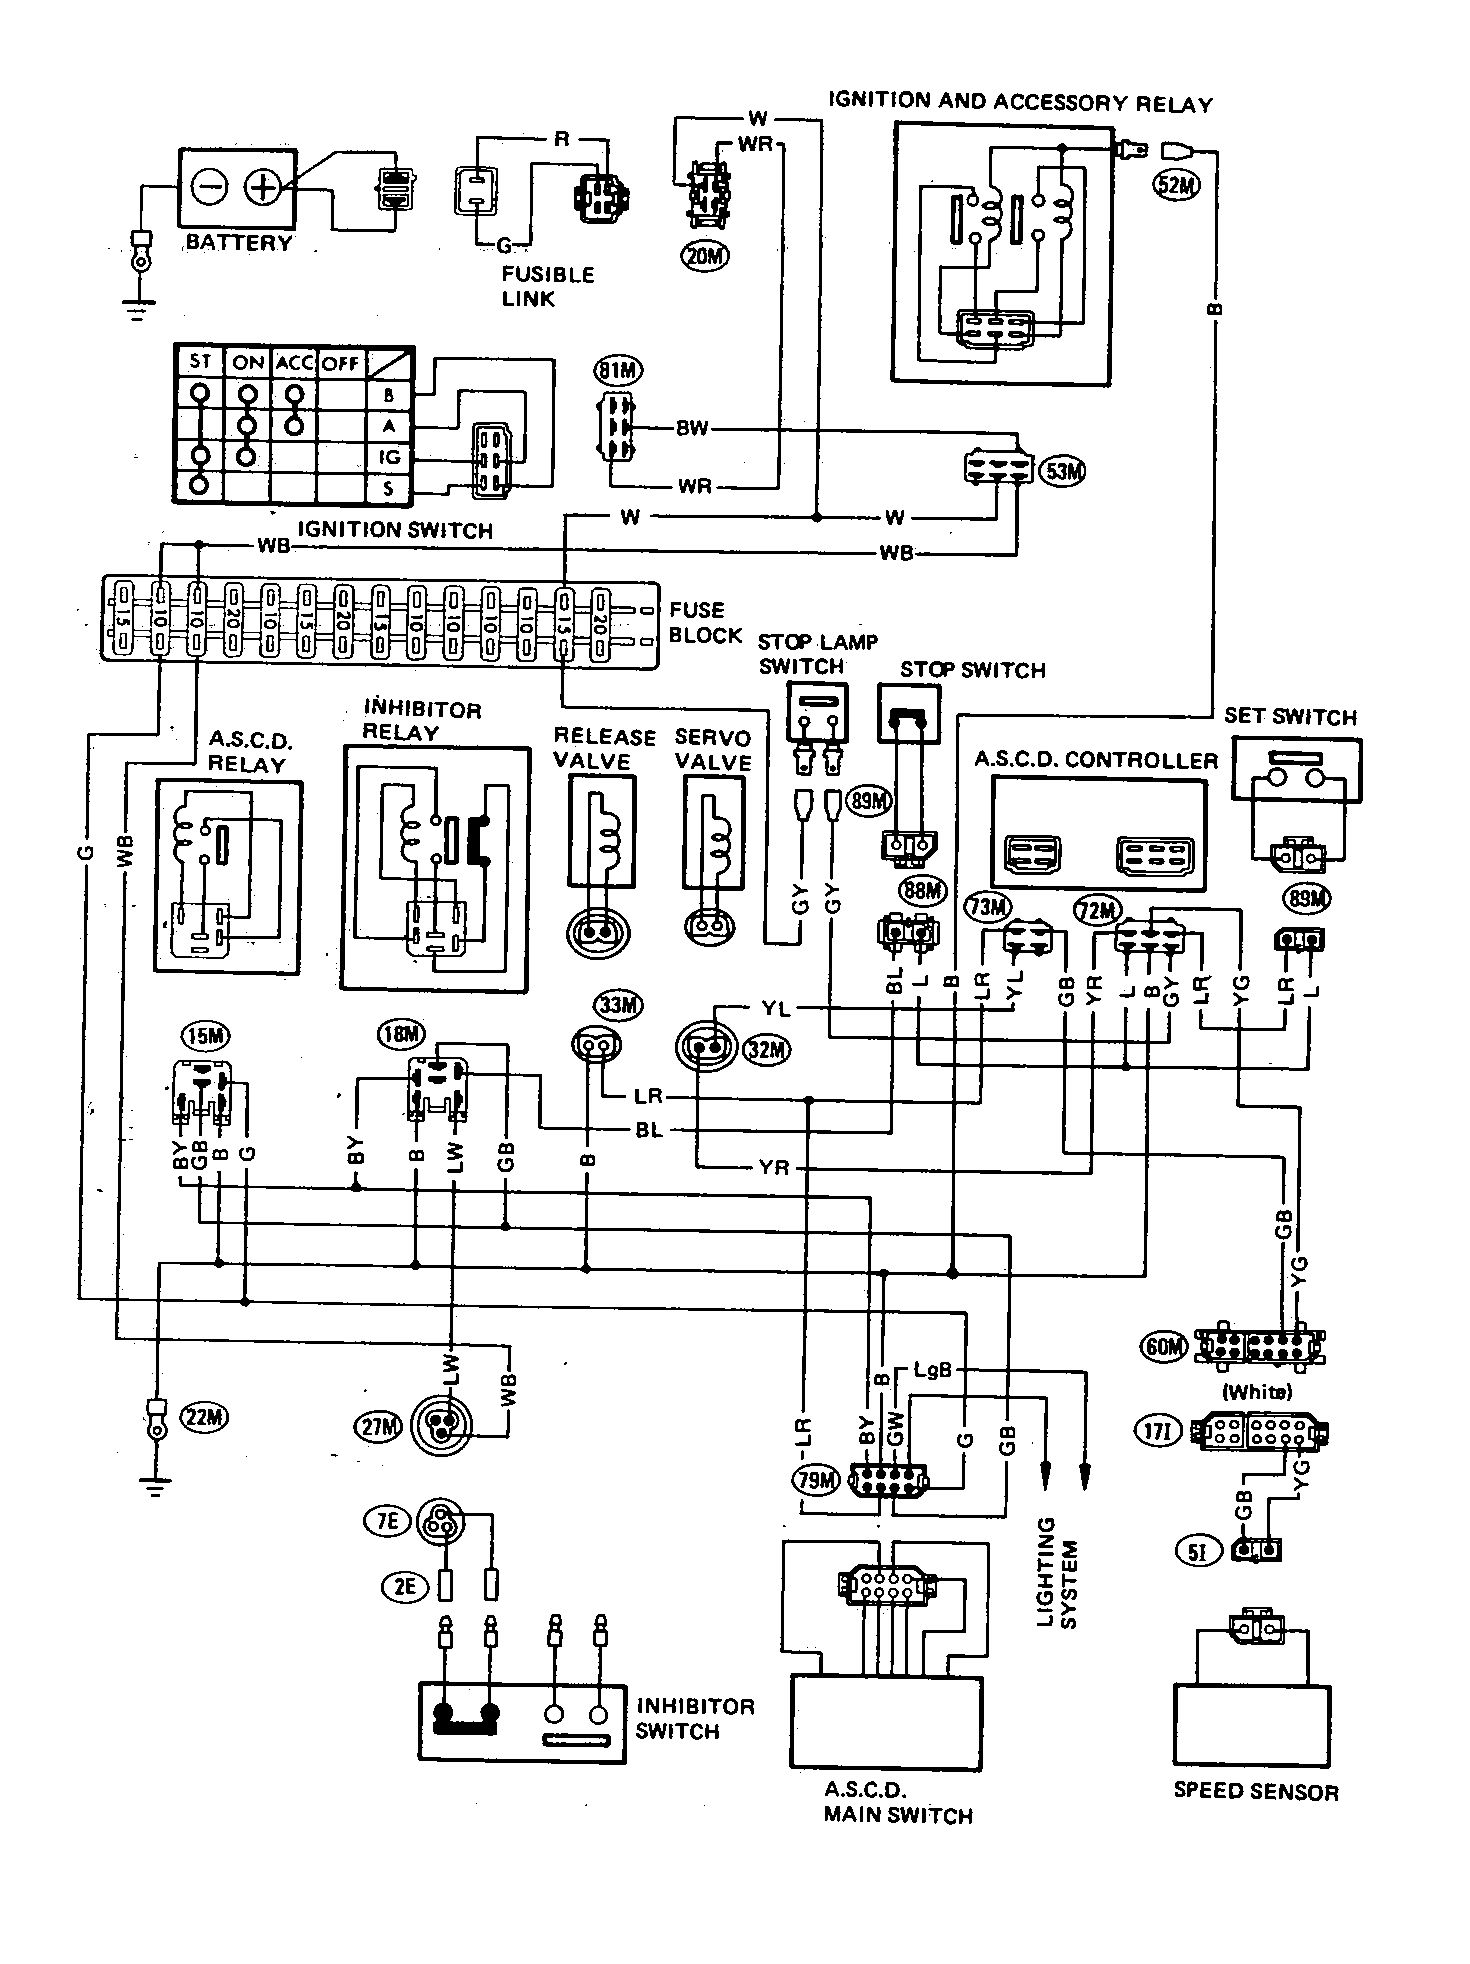 lg cassette air conditioner fault codes grihon com ac, coolers fujitsu air conditioner wiring diagram Fujitsu Air Conditioner Wiring Diagram 1470 wiring diagram together with lg mini split air conditioner error codes 3b3b3b 1964